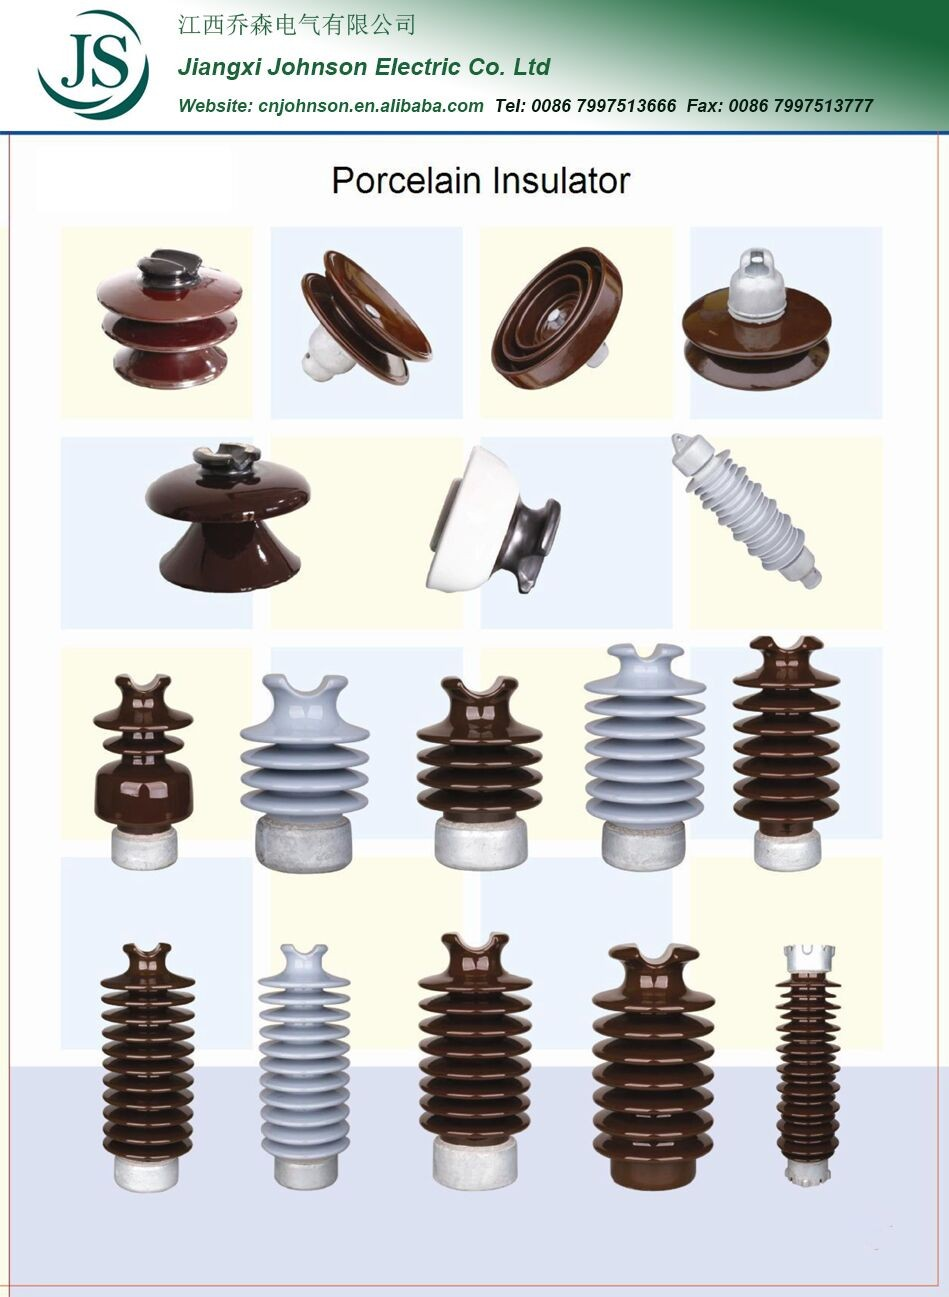 Suspension Insulator With Cap And Pin Buy Suspension Insulator Porcelain Suspension Insulator